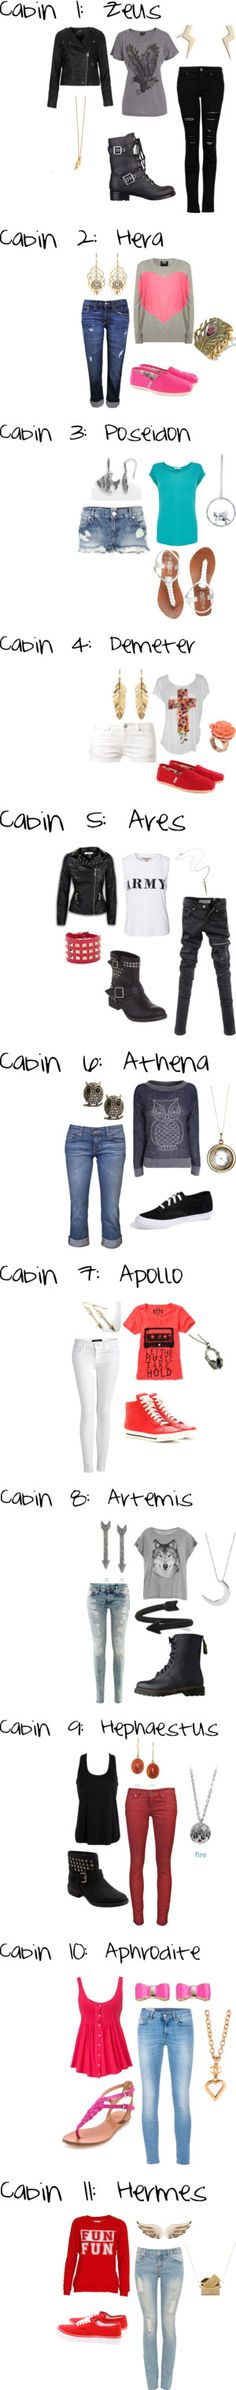 """Camp Half-Blood Cabins"" by kenzie2018 on Polyvore. Why is it not surprising that my fave cabins are also my fave outfits"